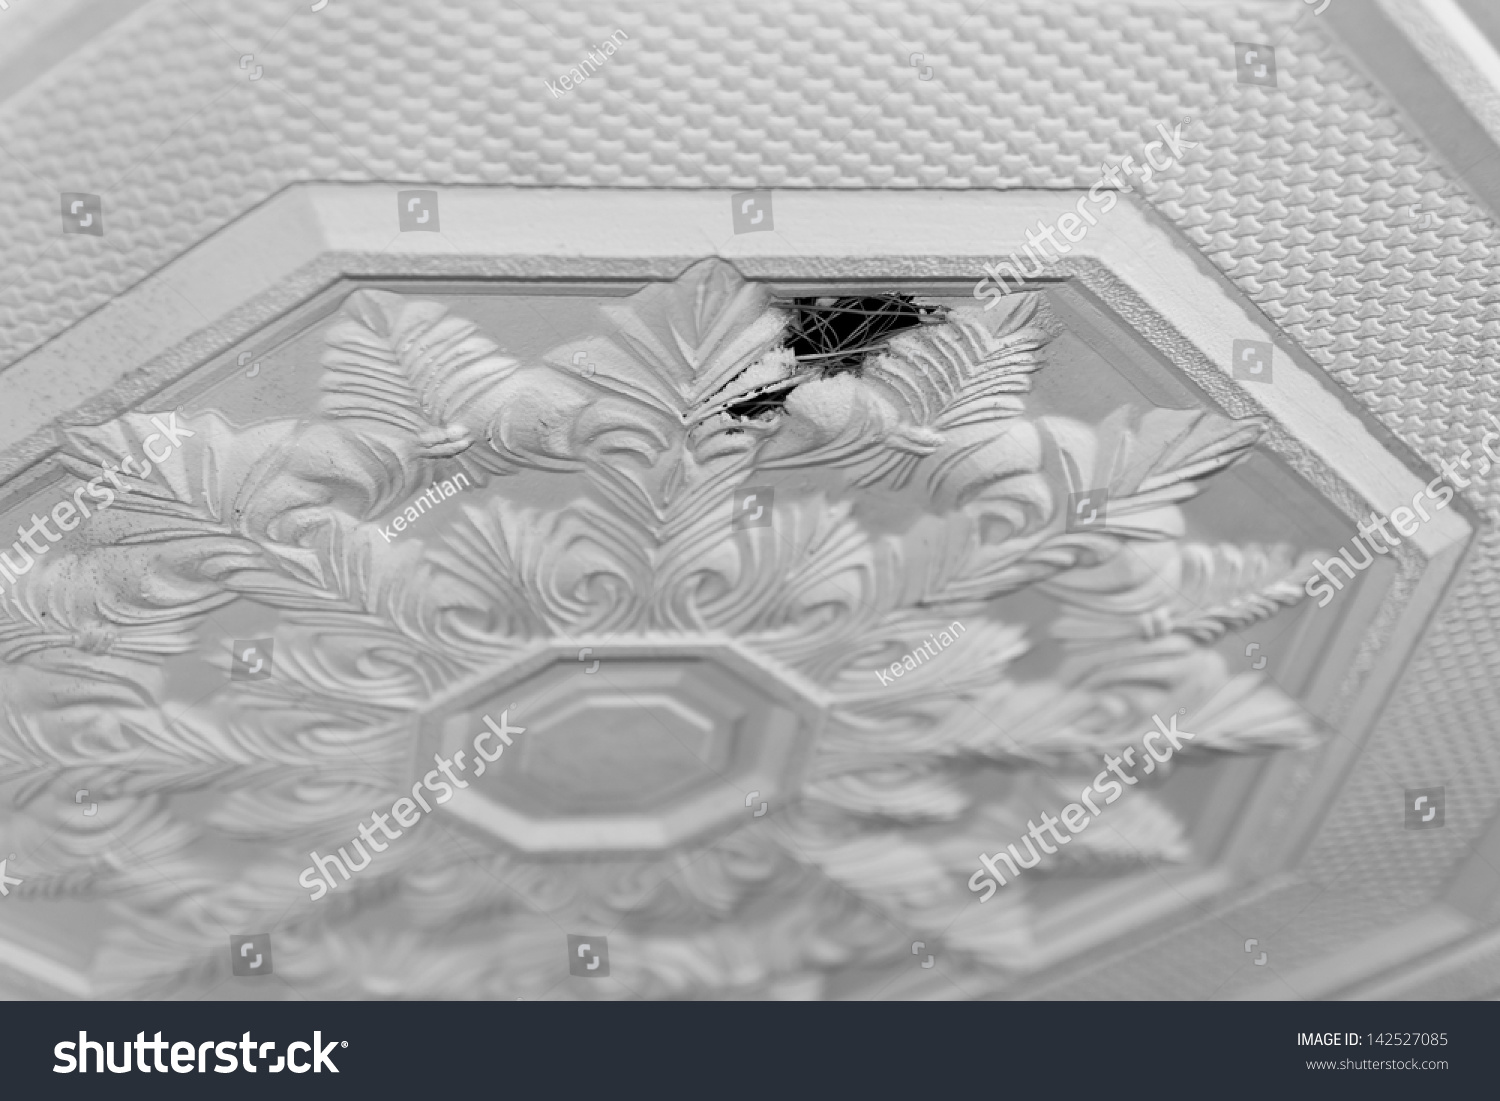 Hole Leaking Ceiling Tiles With Flower Pattern, Which Has Been Damaged By  Rain Drops.